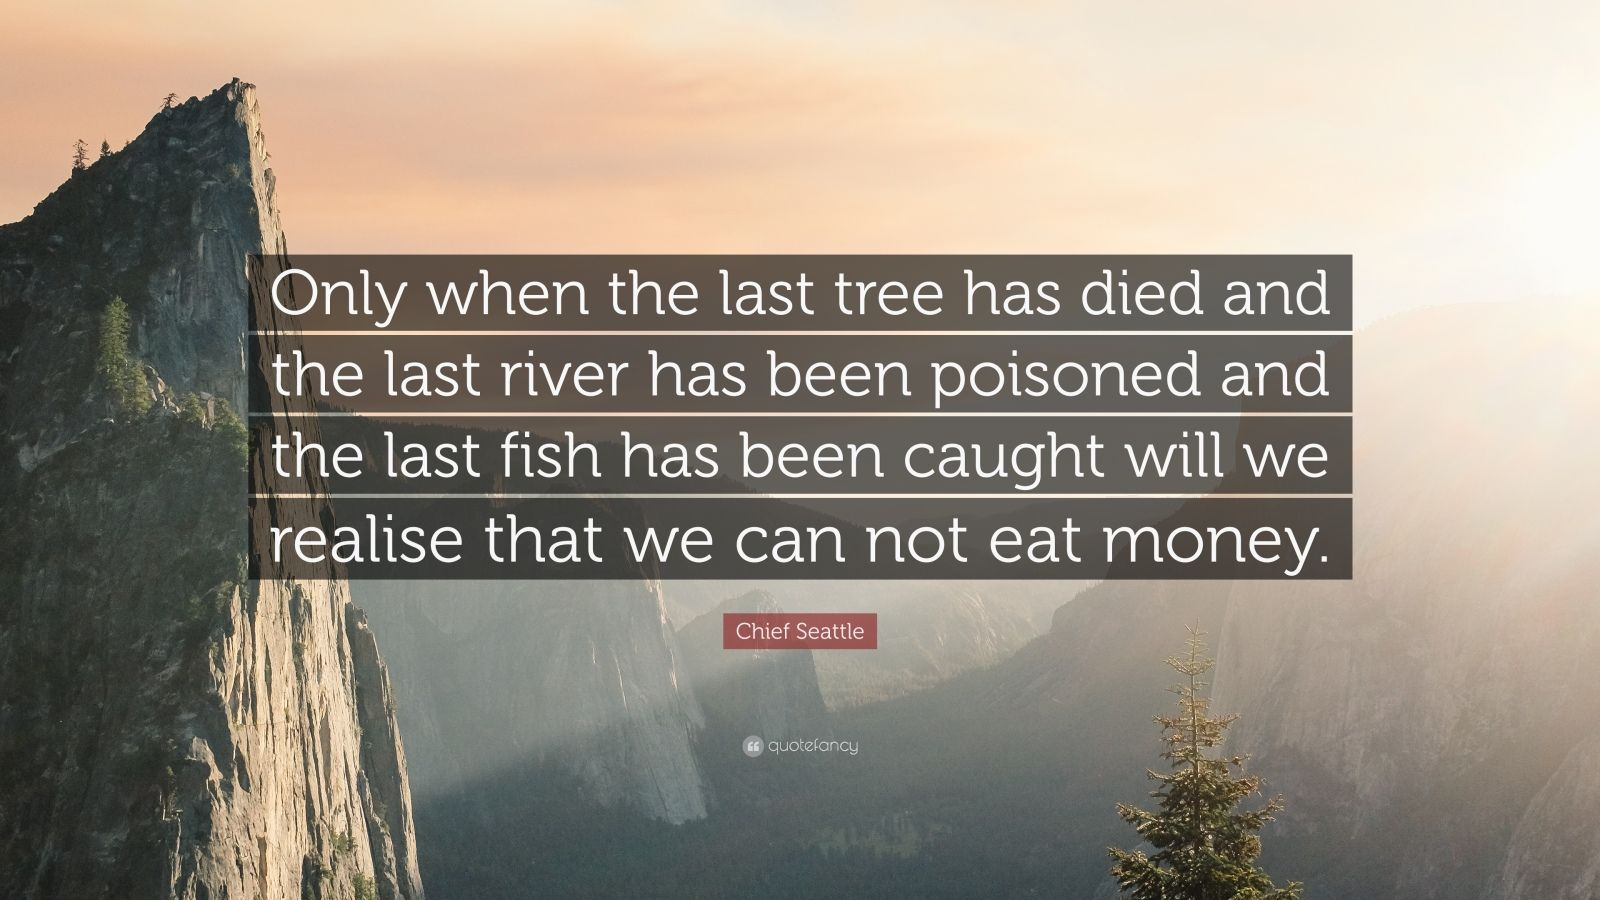 """Chief Seattle Quote: """"Only when the last tree has died and the last river has been poisoned and the last fish has been caught will we realise that we can not eat money."""""""